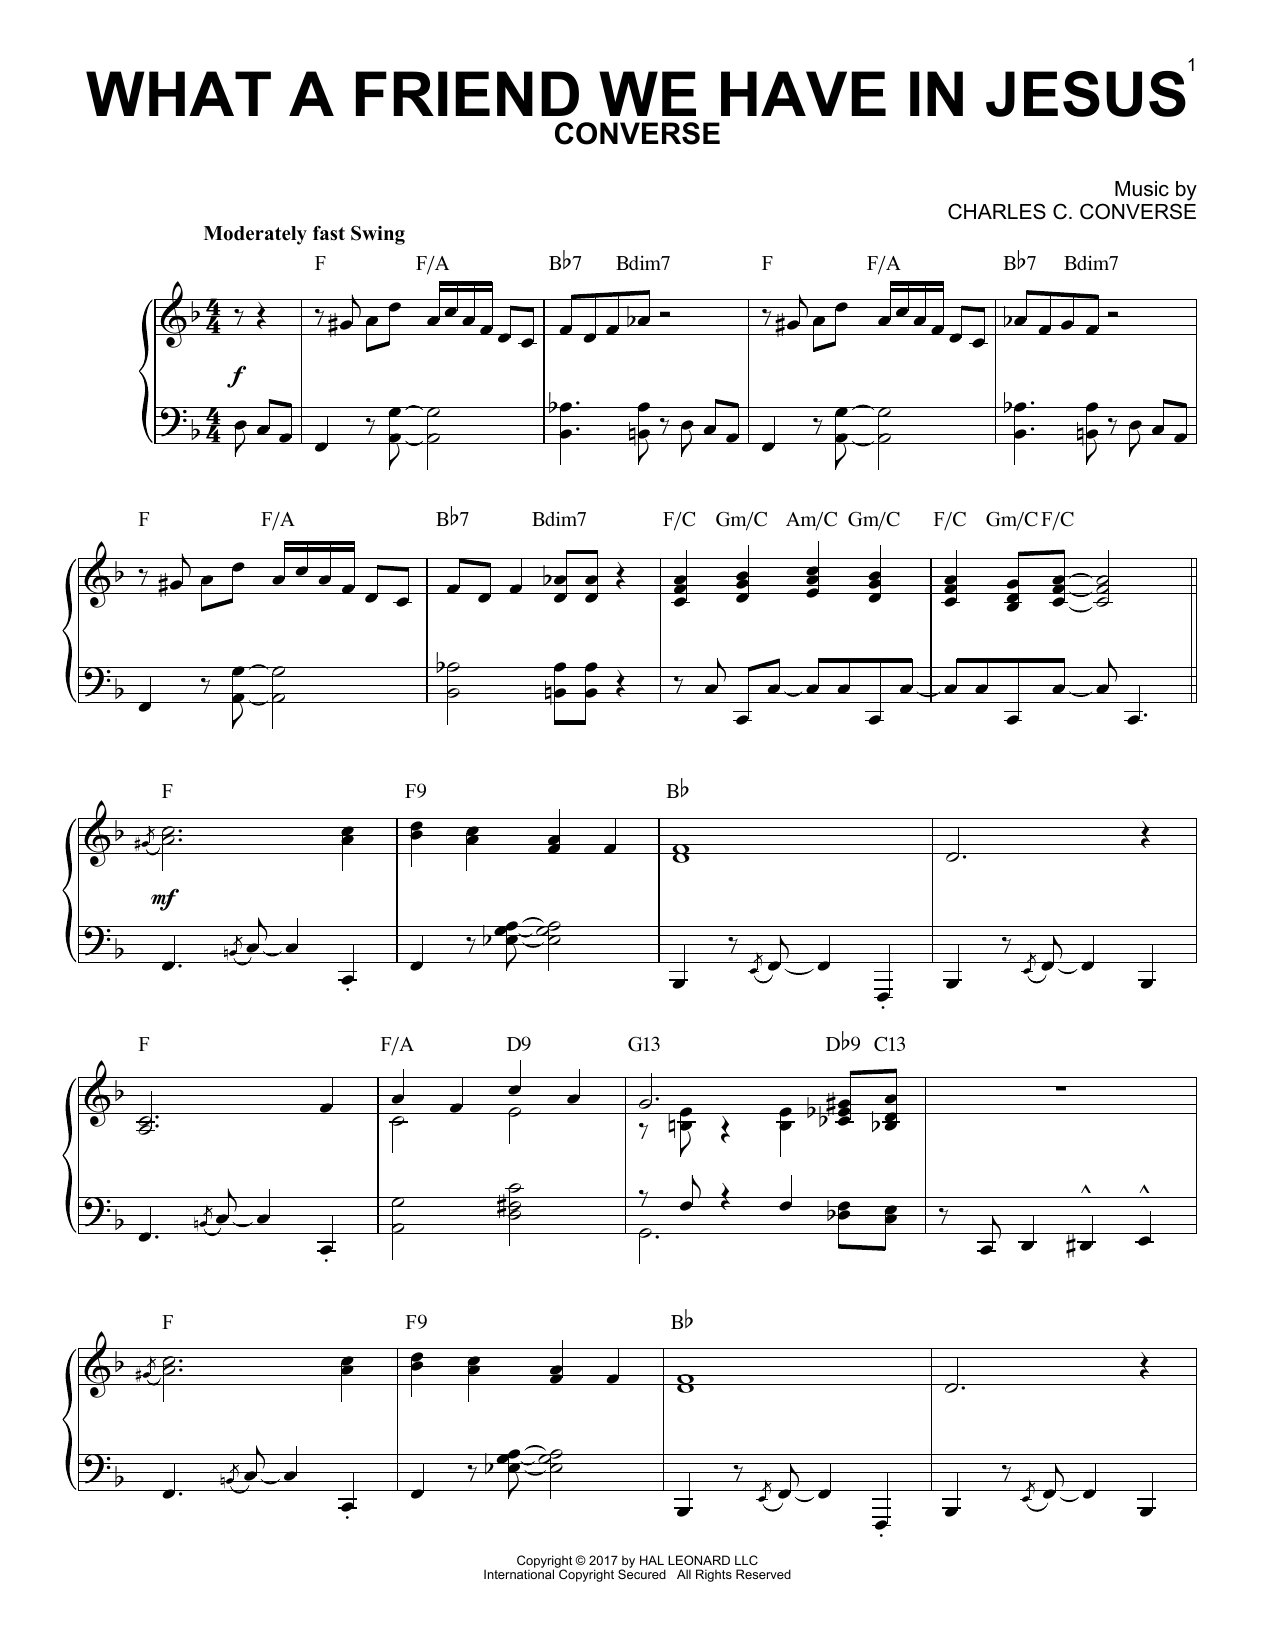 Charles C. Converse What A Friend We Have In Jesus [Jazz version] sheet music notes and chords. Download Printable PDF.